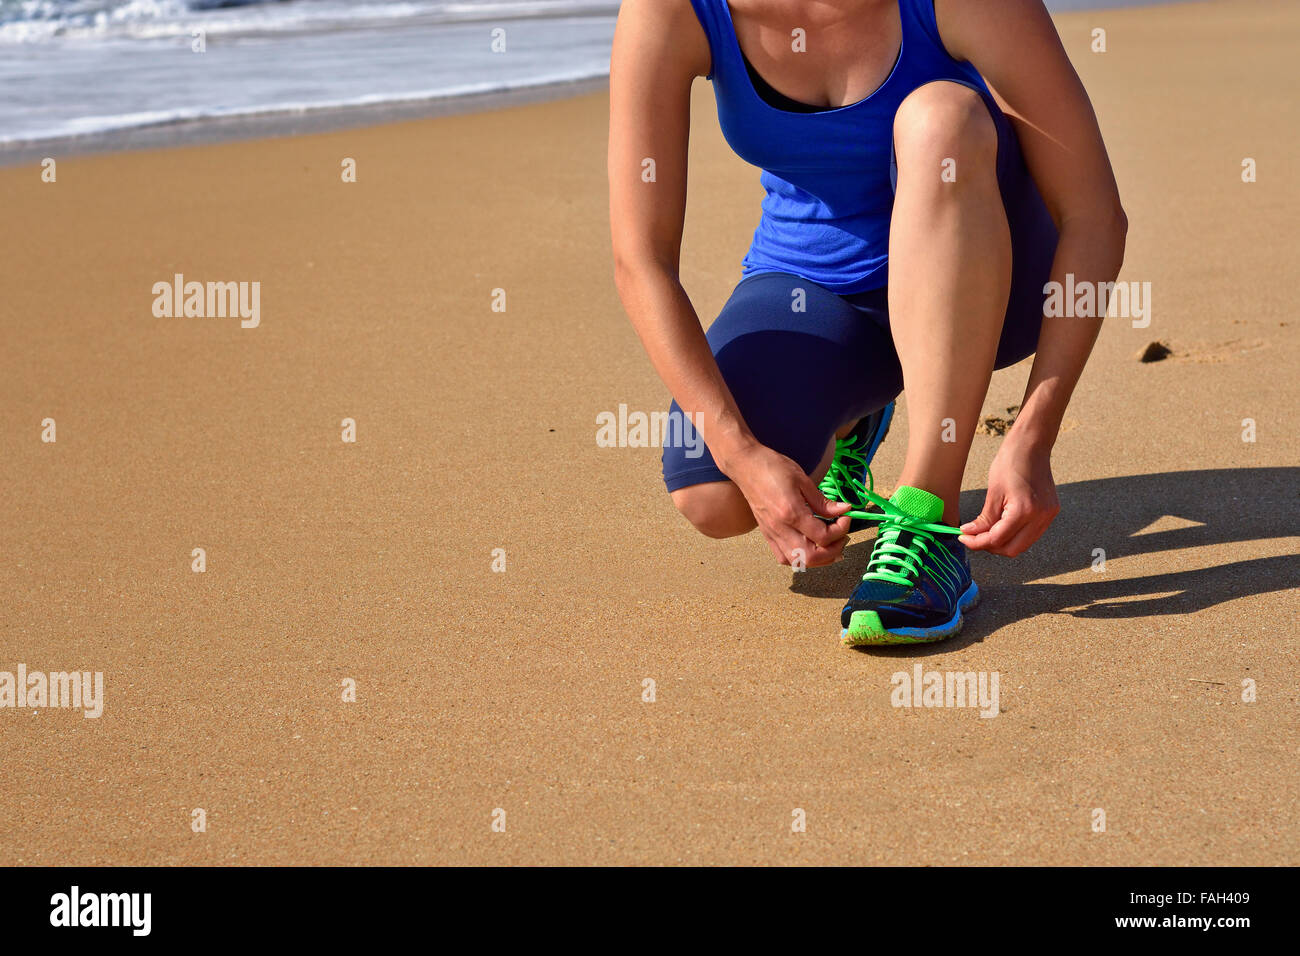 Running shoes - closeup of woman tying shoe laces. Female runner jogging getting ready for jogging on ocean beach. Stock Photo